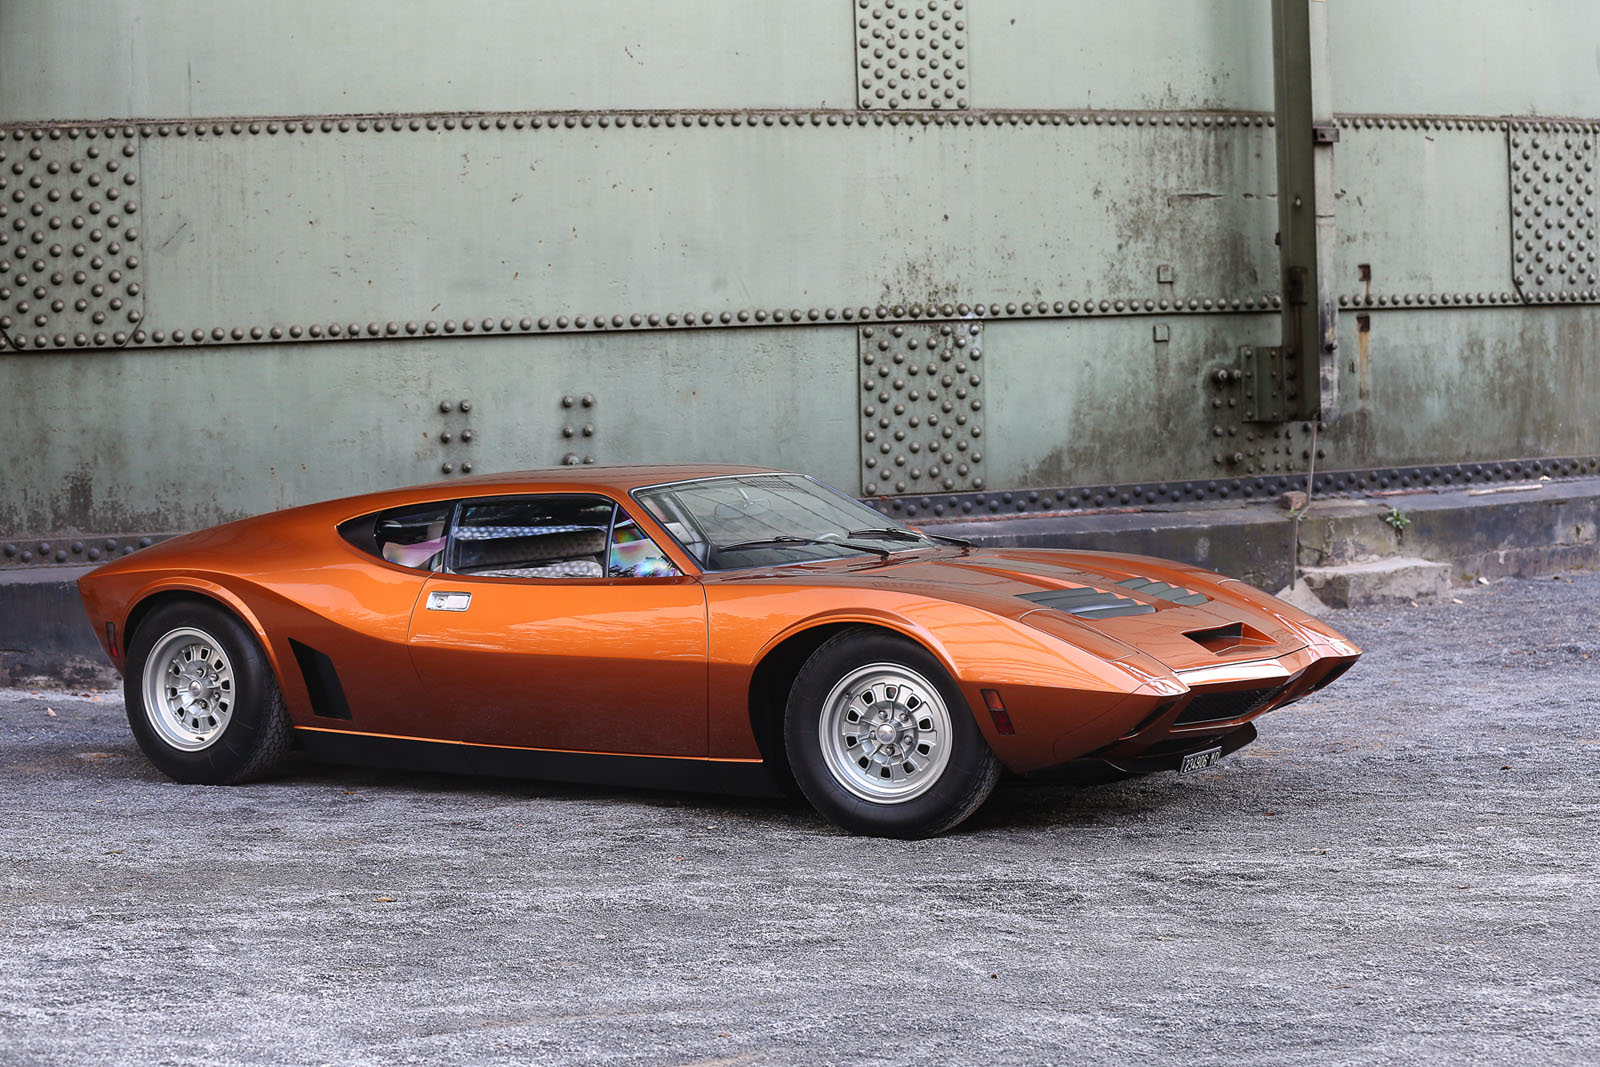 Find Your The Classic Sports Car Of Your Dreams In Arizona